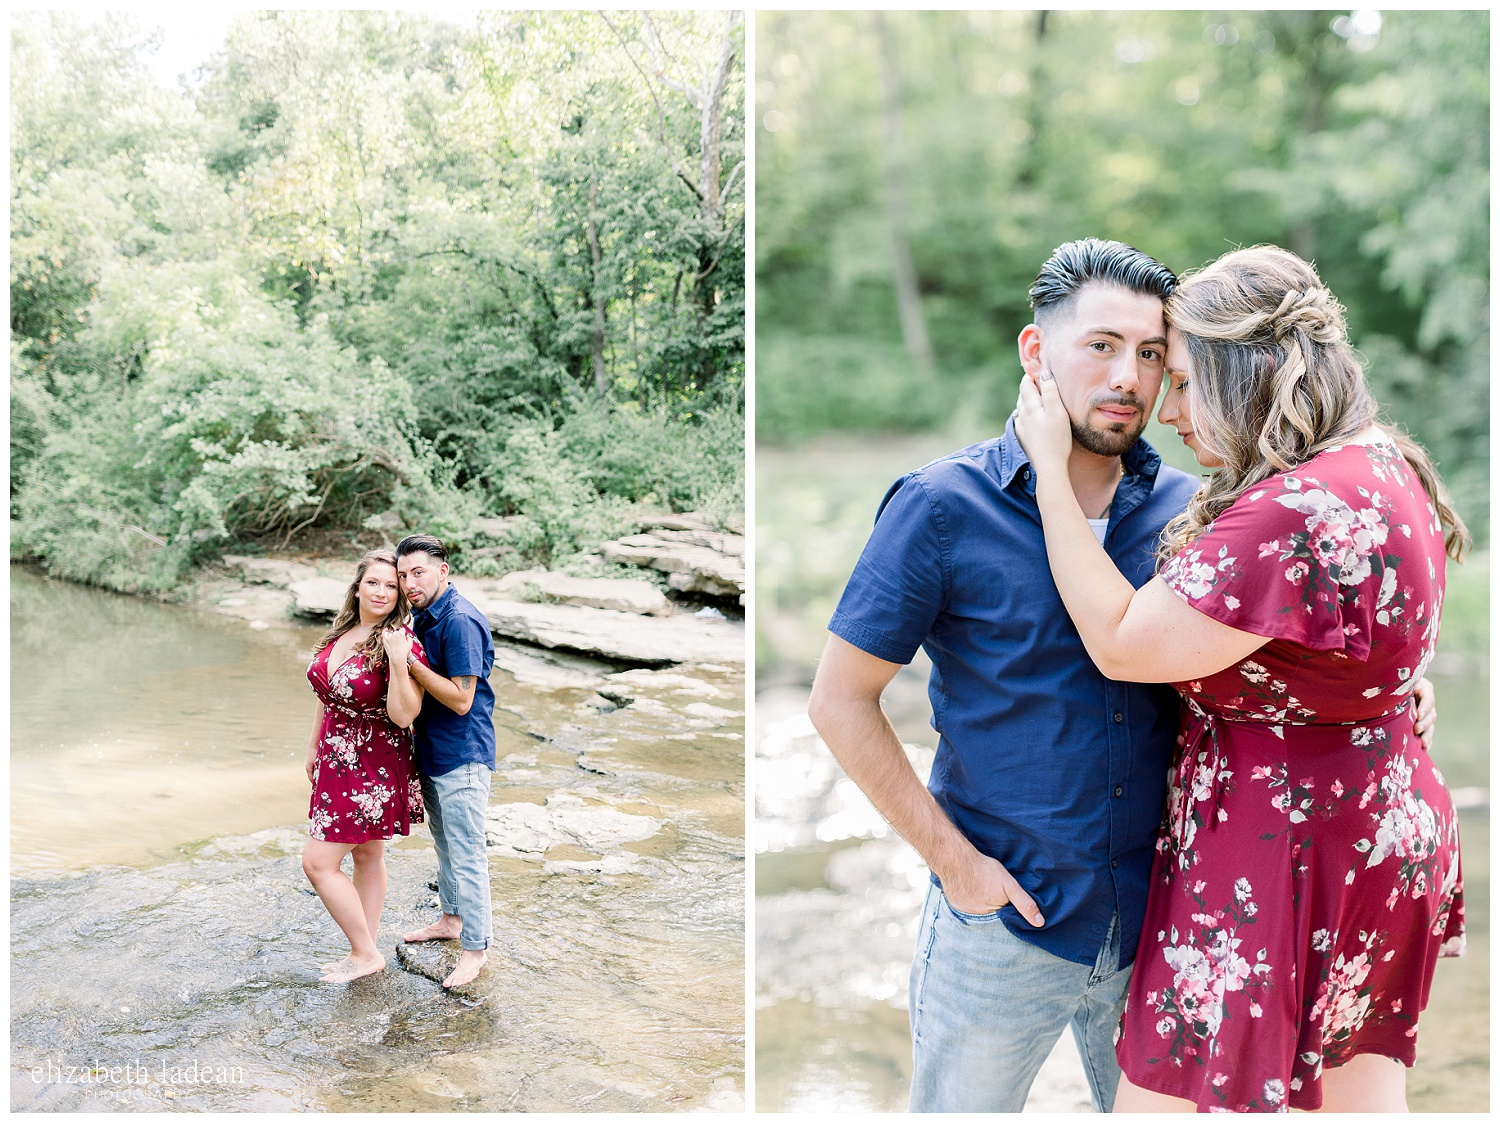 adventurous-engagement-photography-kansas-city-J+R2018-elizabeth-ladean-photography-photo-_9513.jpg